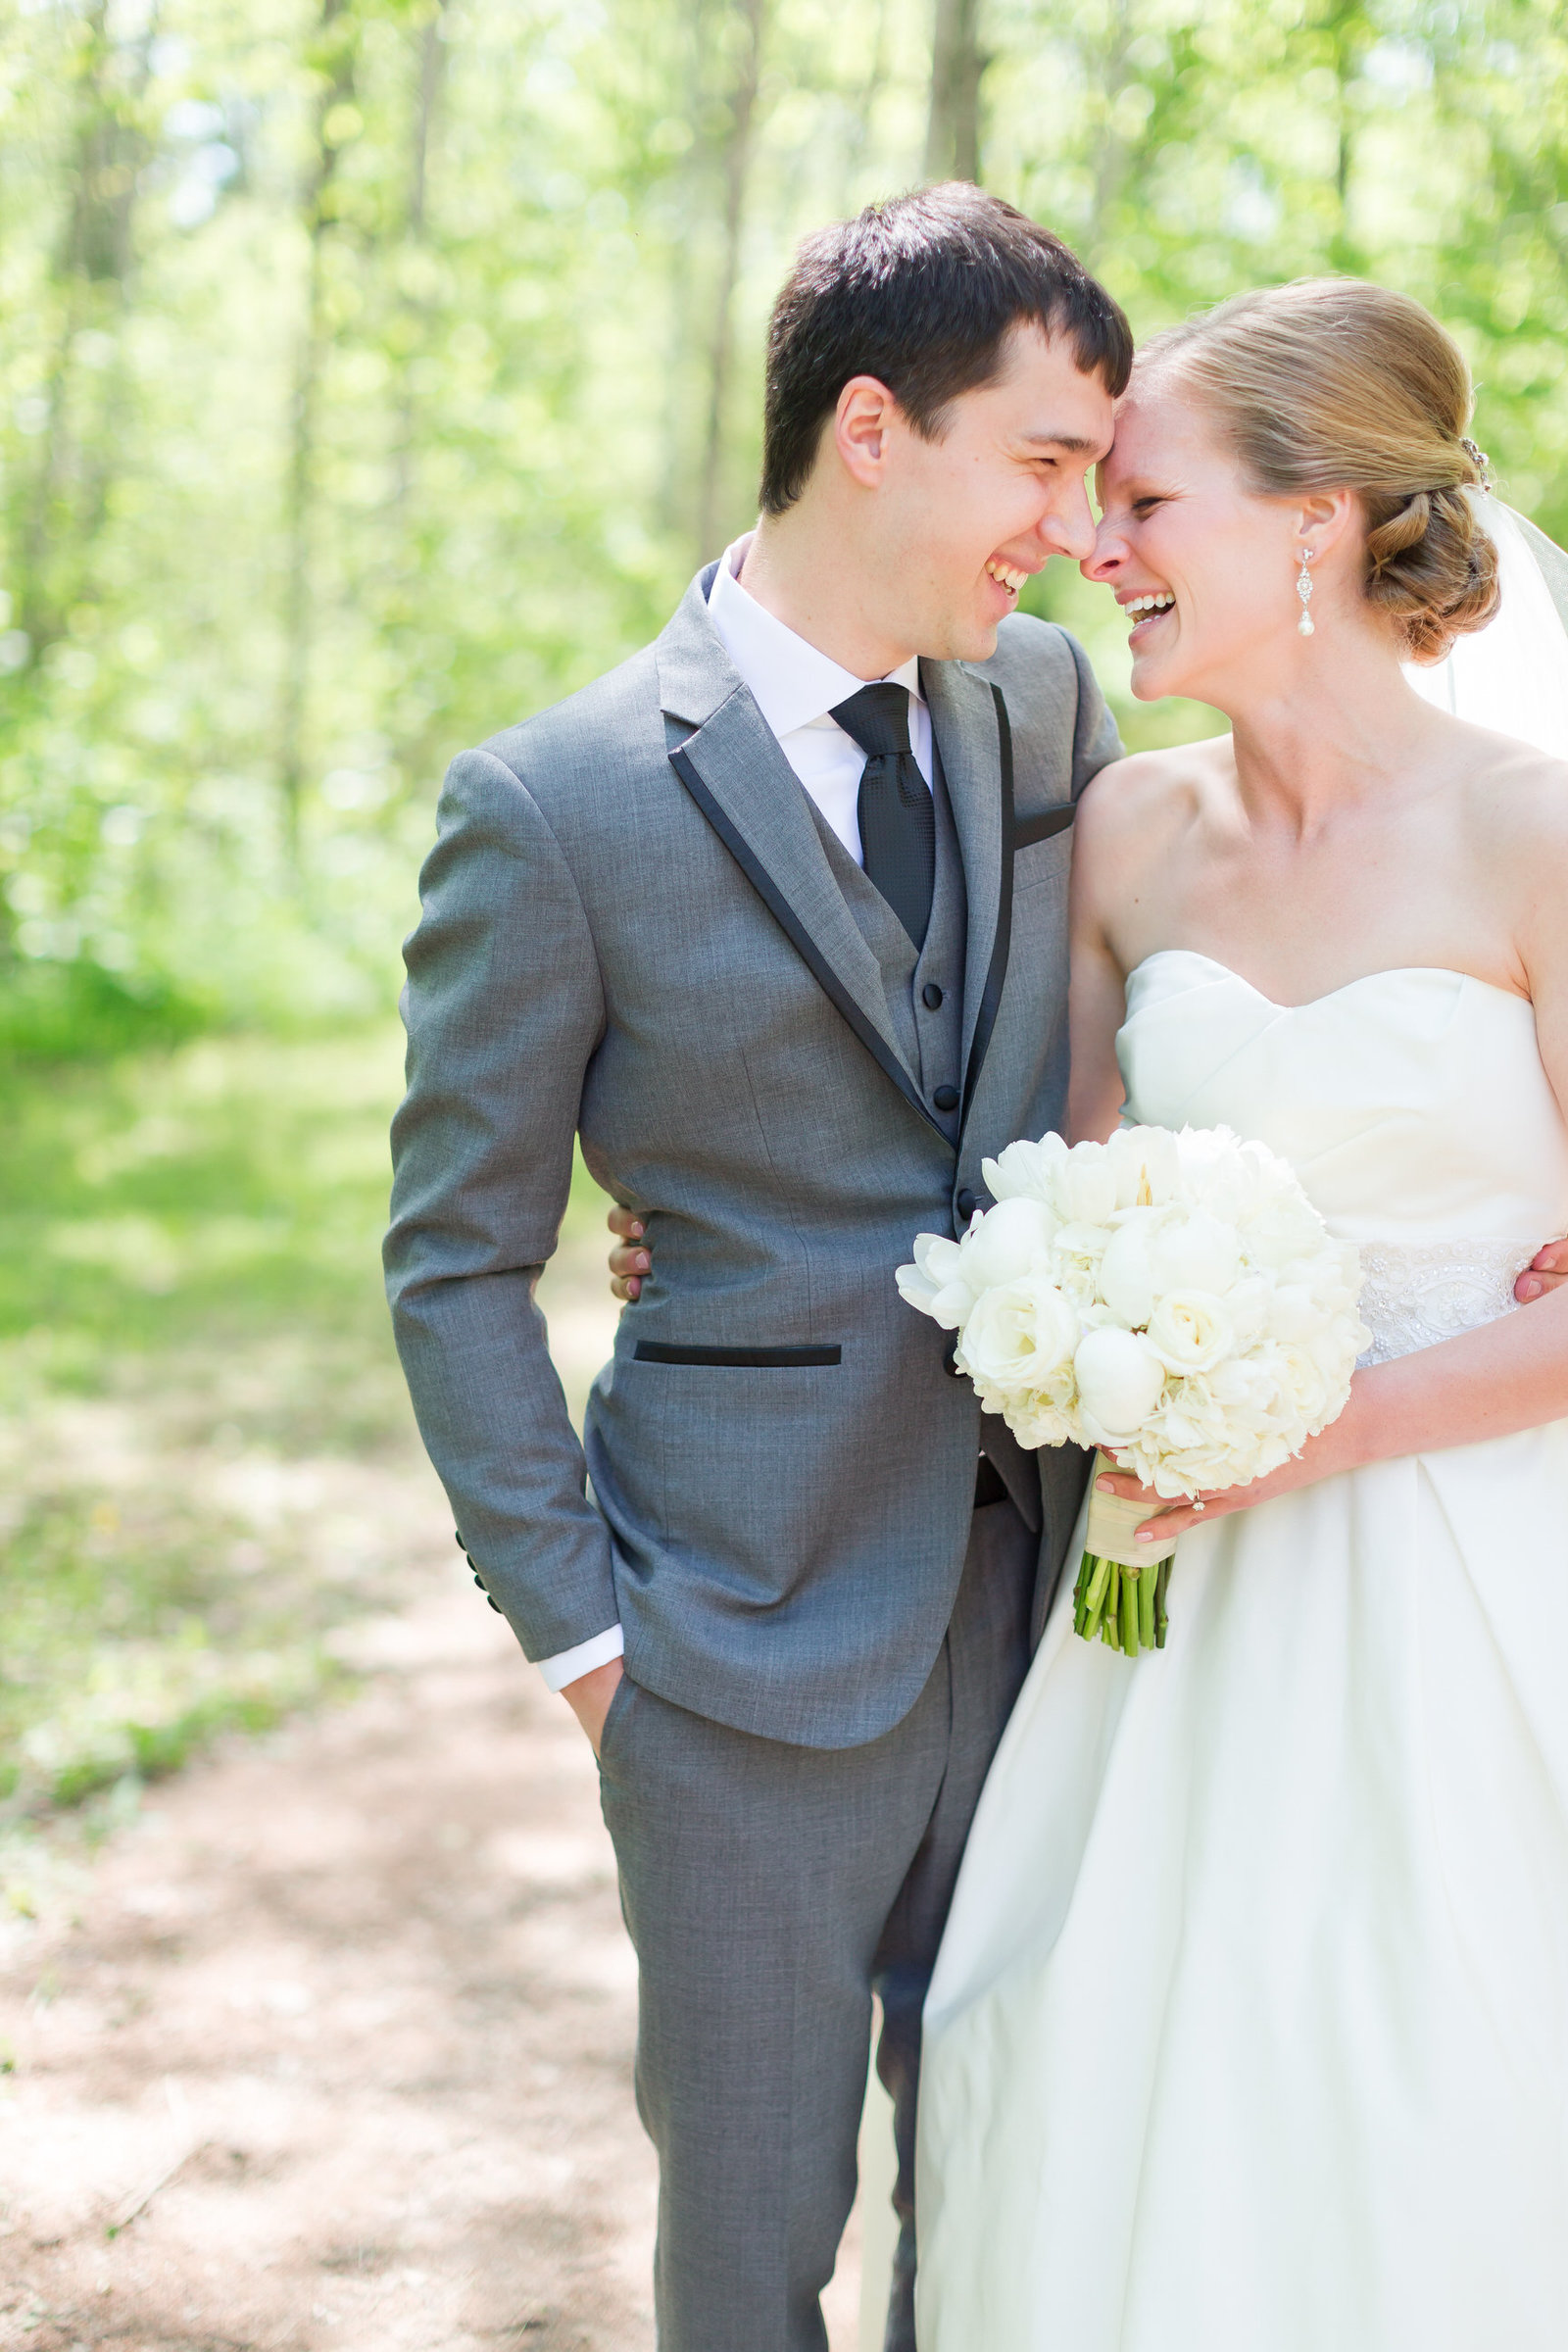 Maison Meredith Photography Wisconsin Wedding Photographer 048